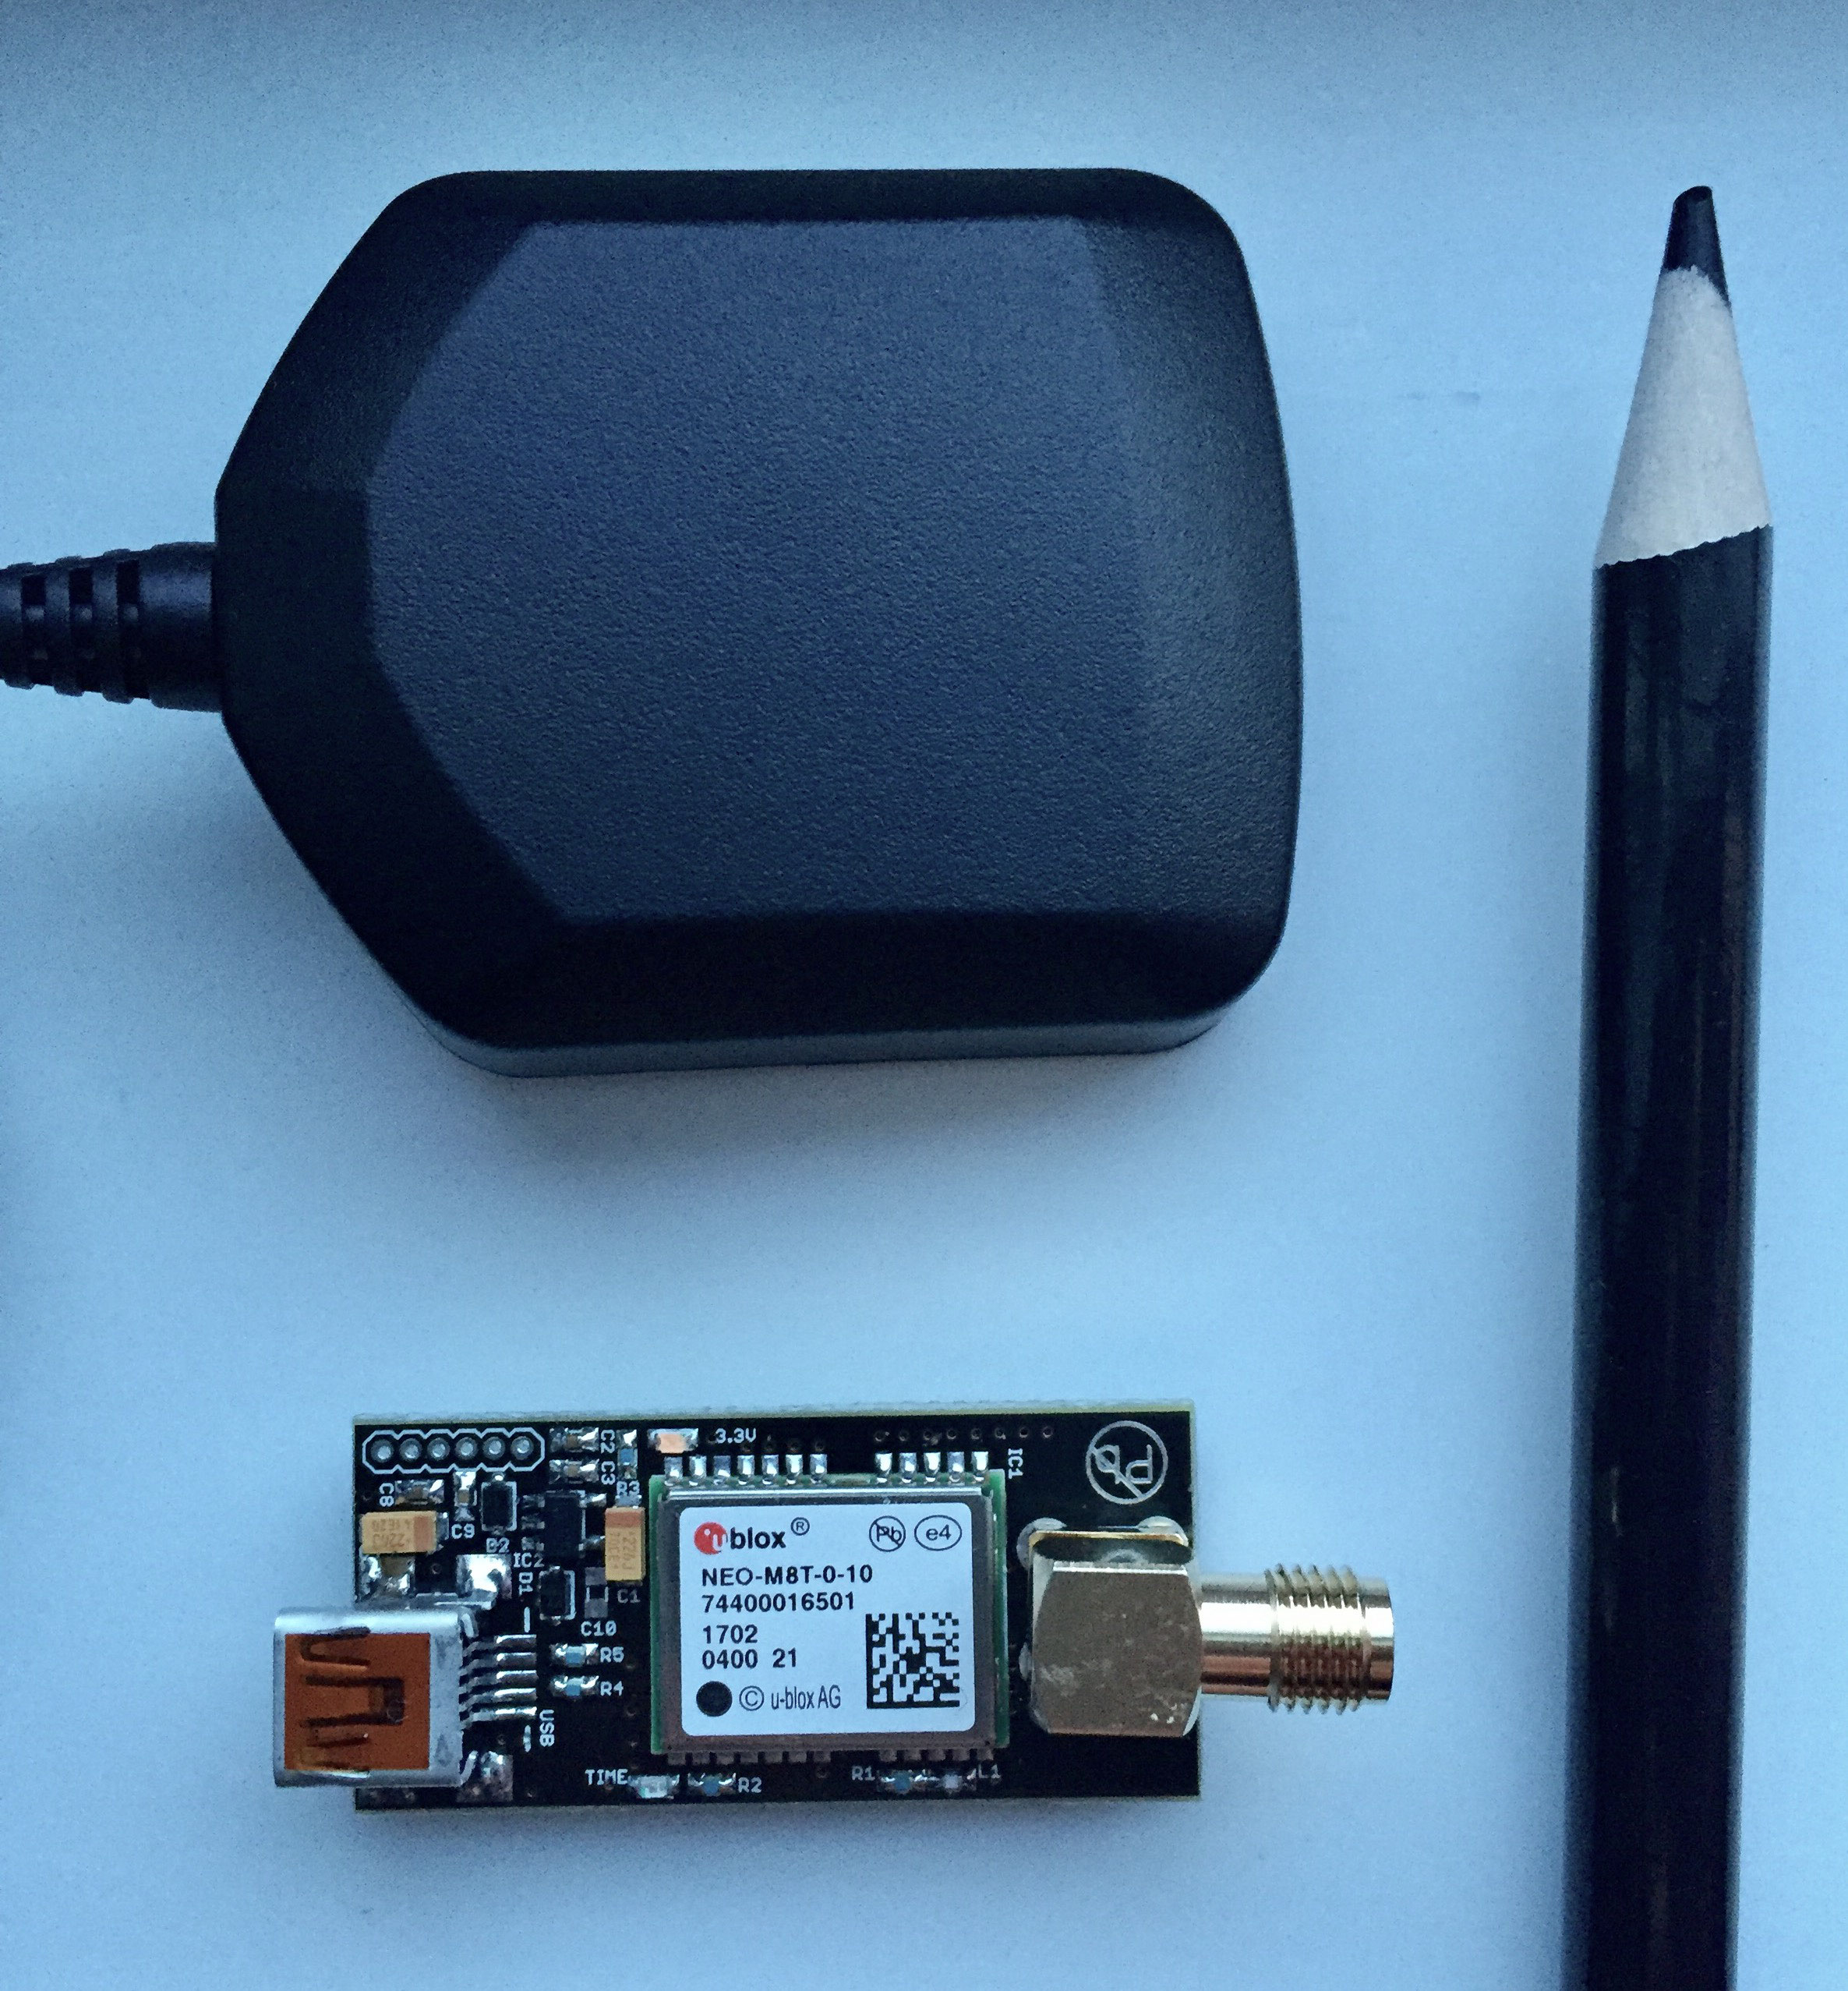 u-blox NEO-M8T, part I - BlackDot GNSS